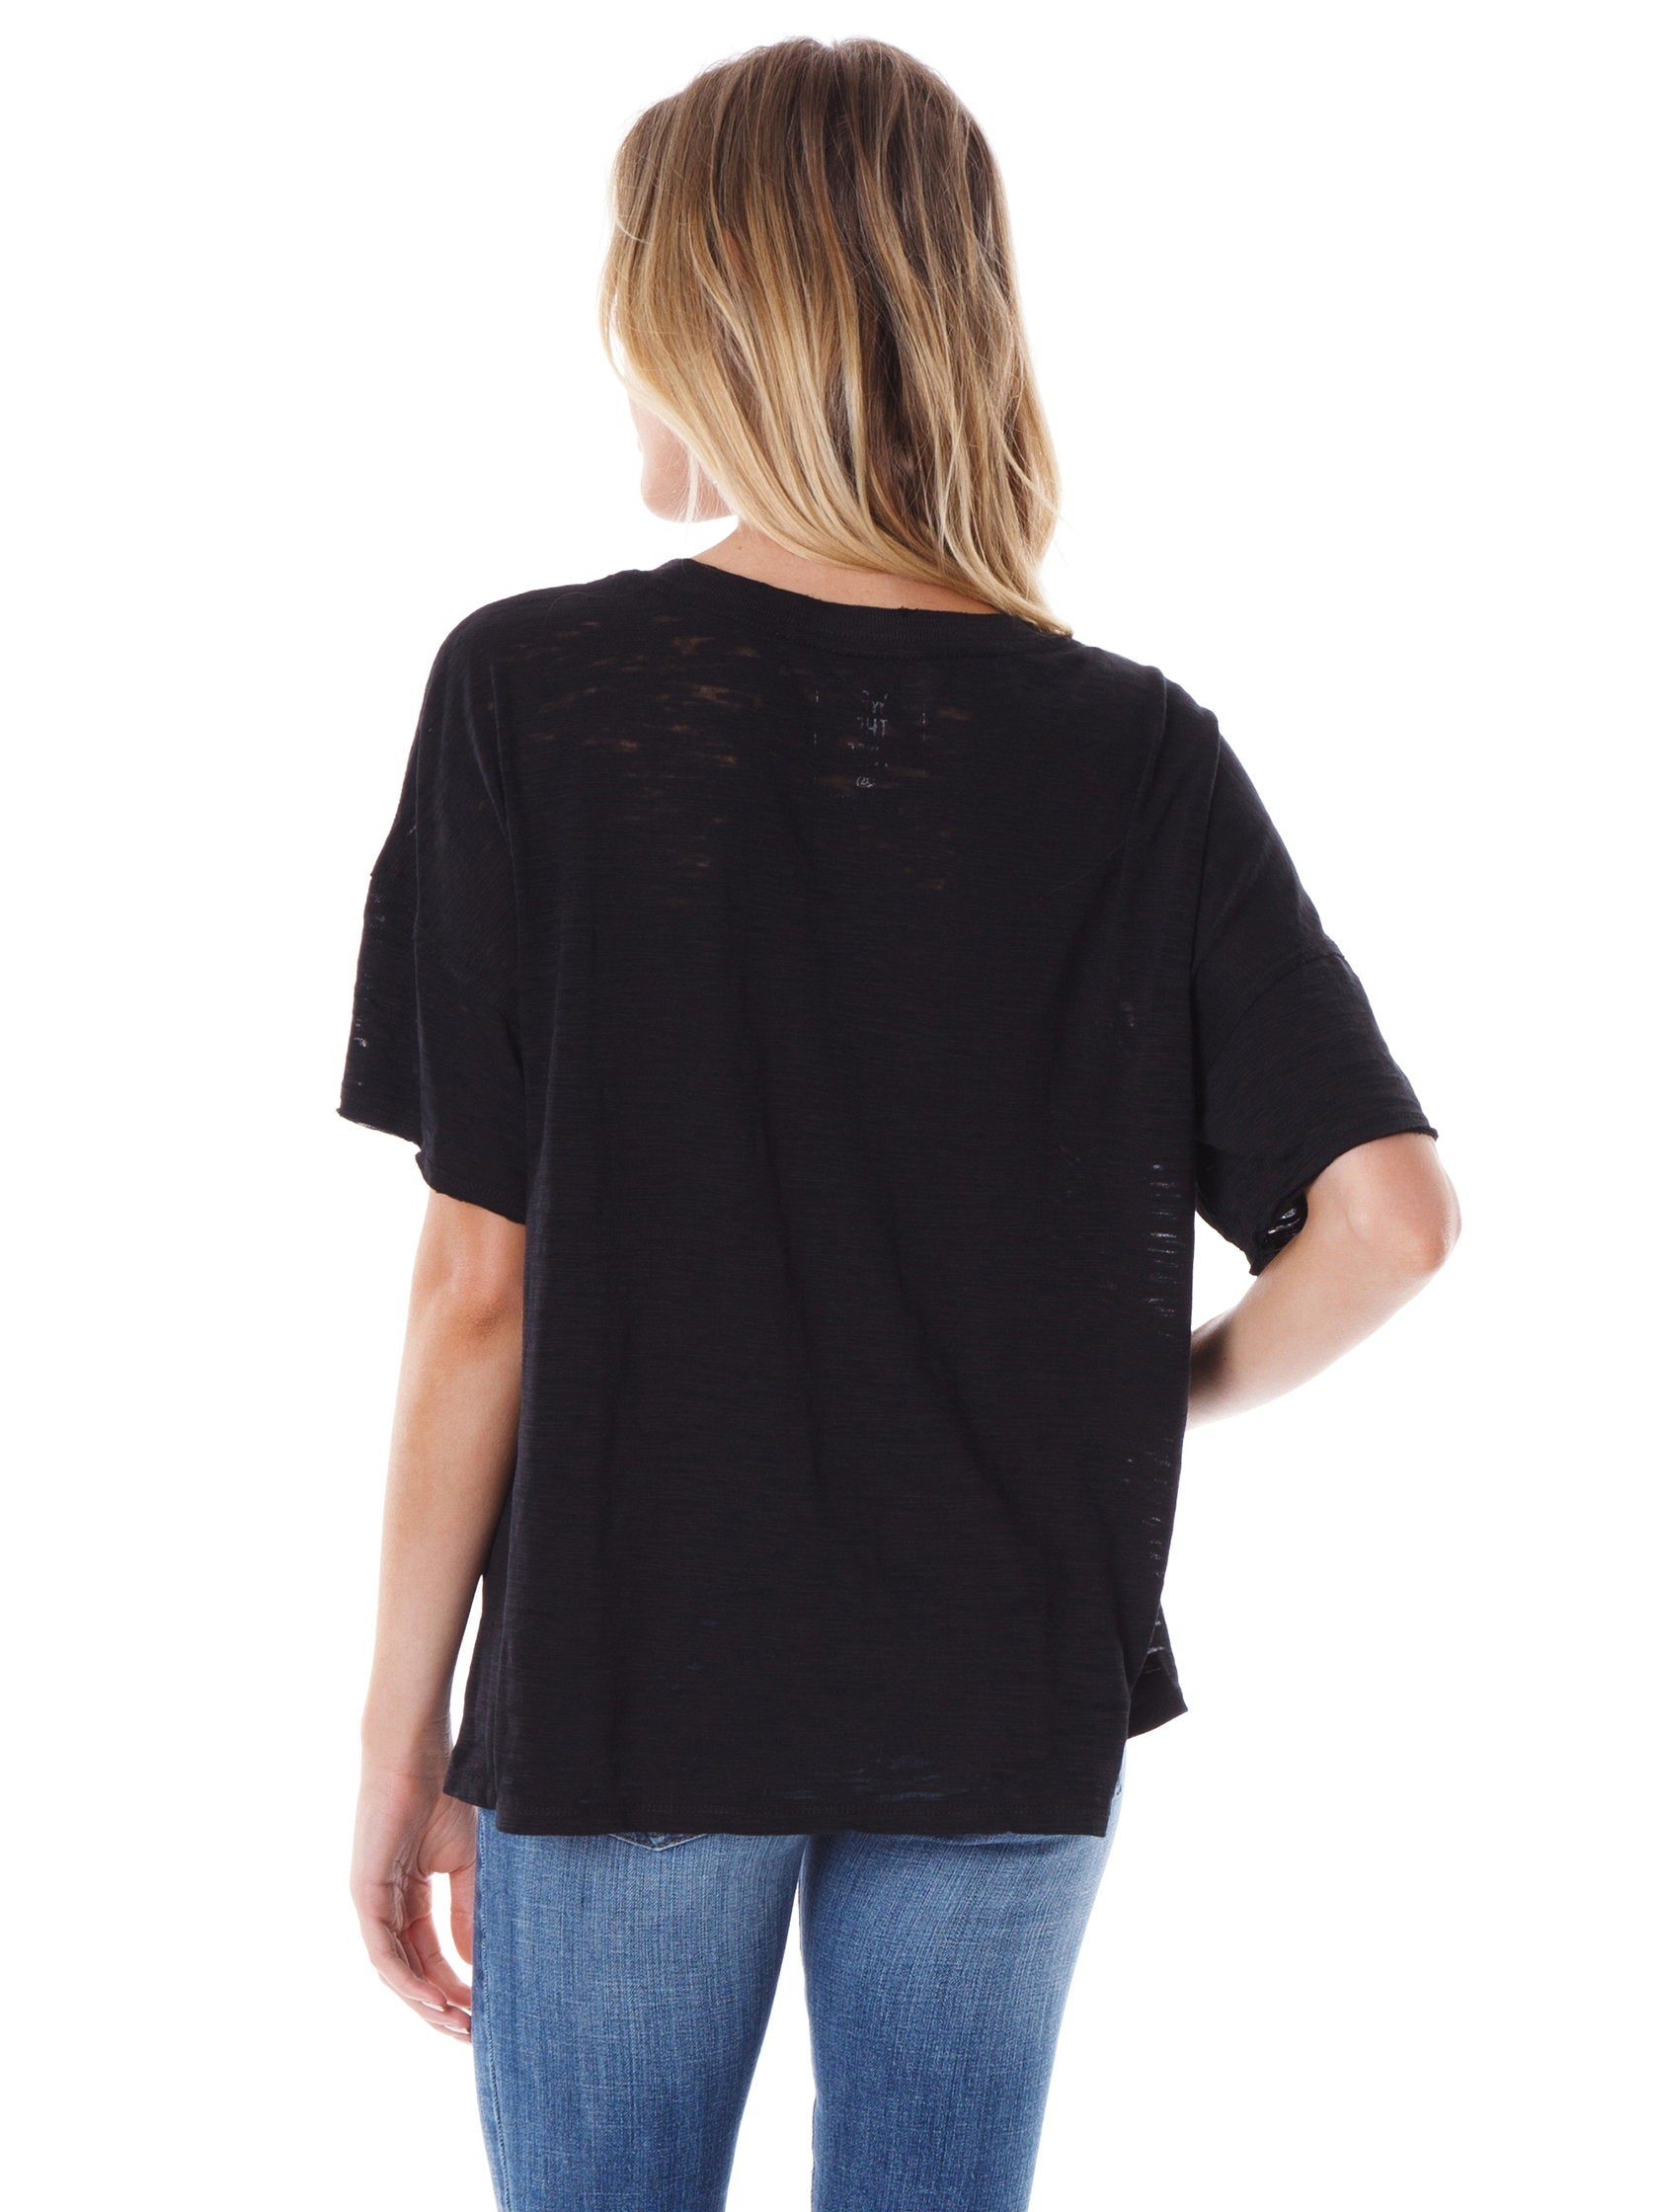 aa02861c67e4 Women outfit in a top rental from Free People called Jordan Tee